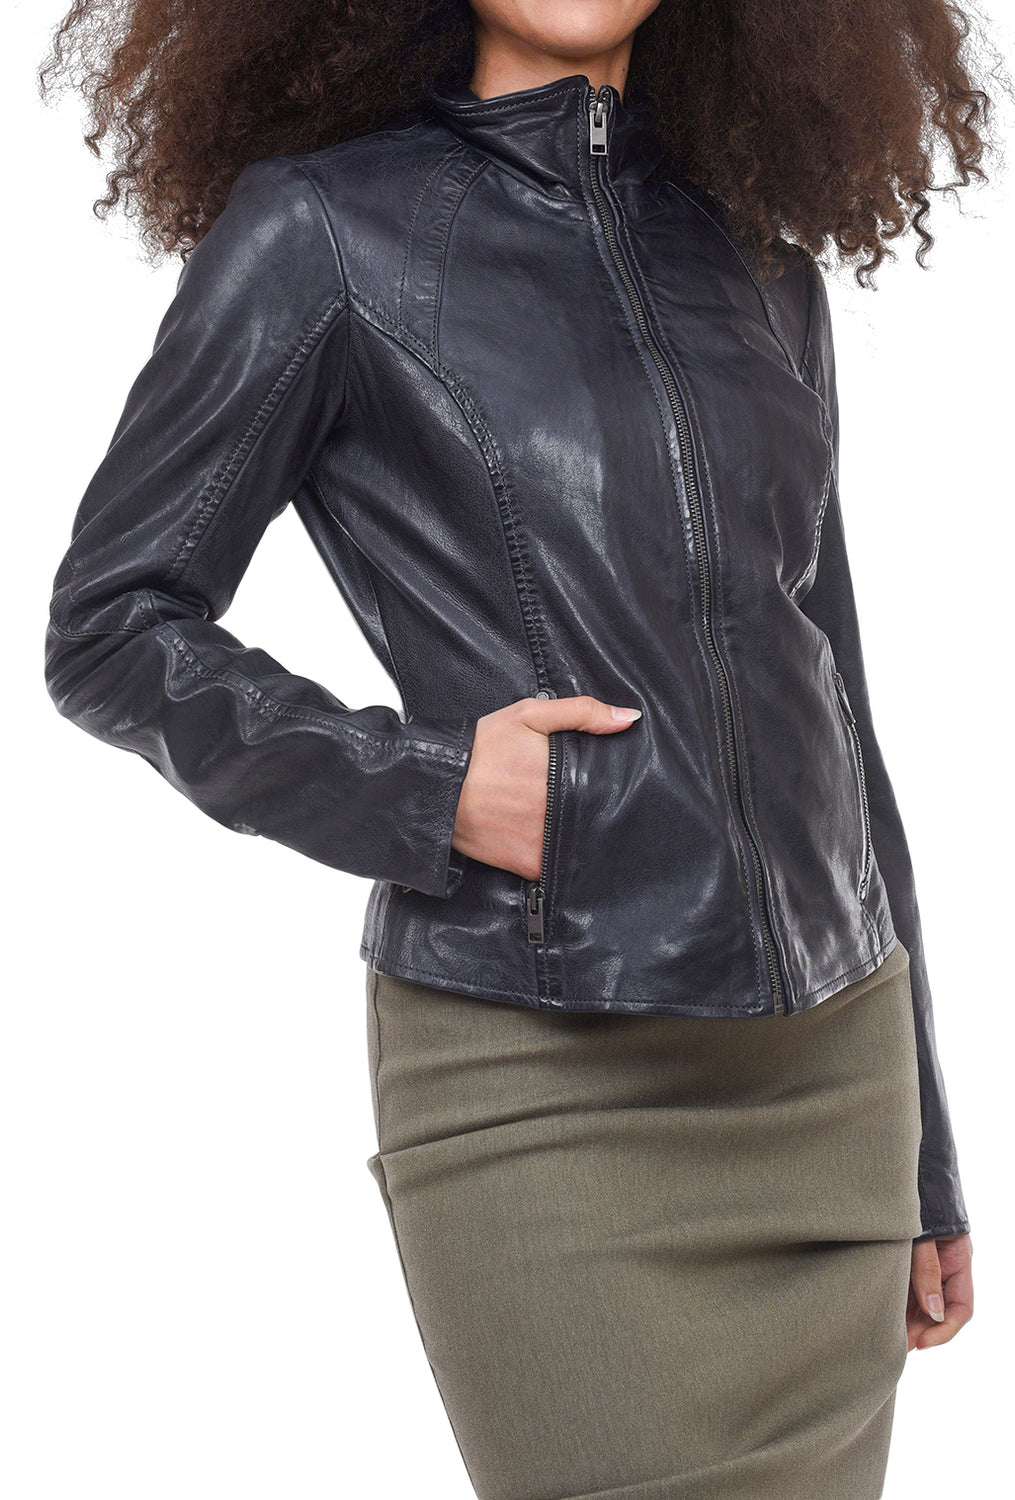 Mauritius Else Leather Jacket, Navy